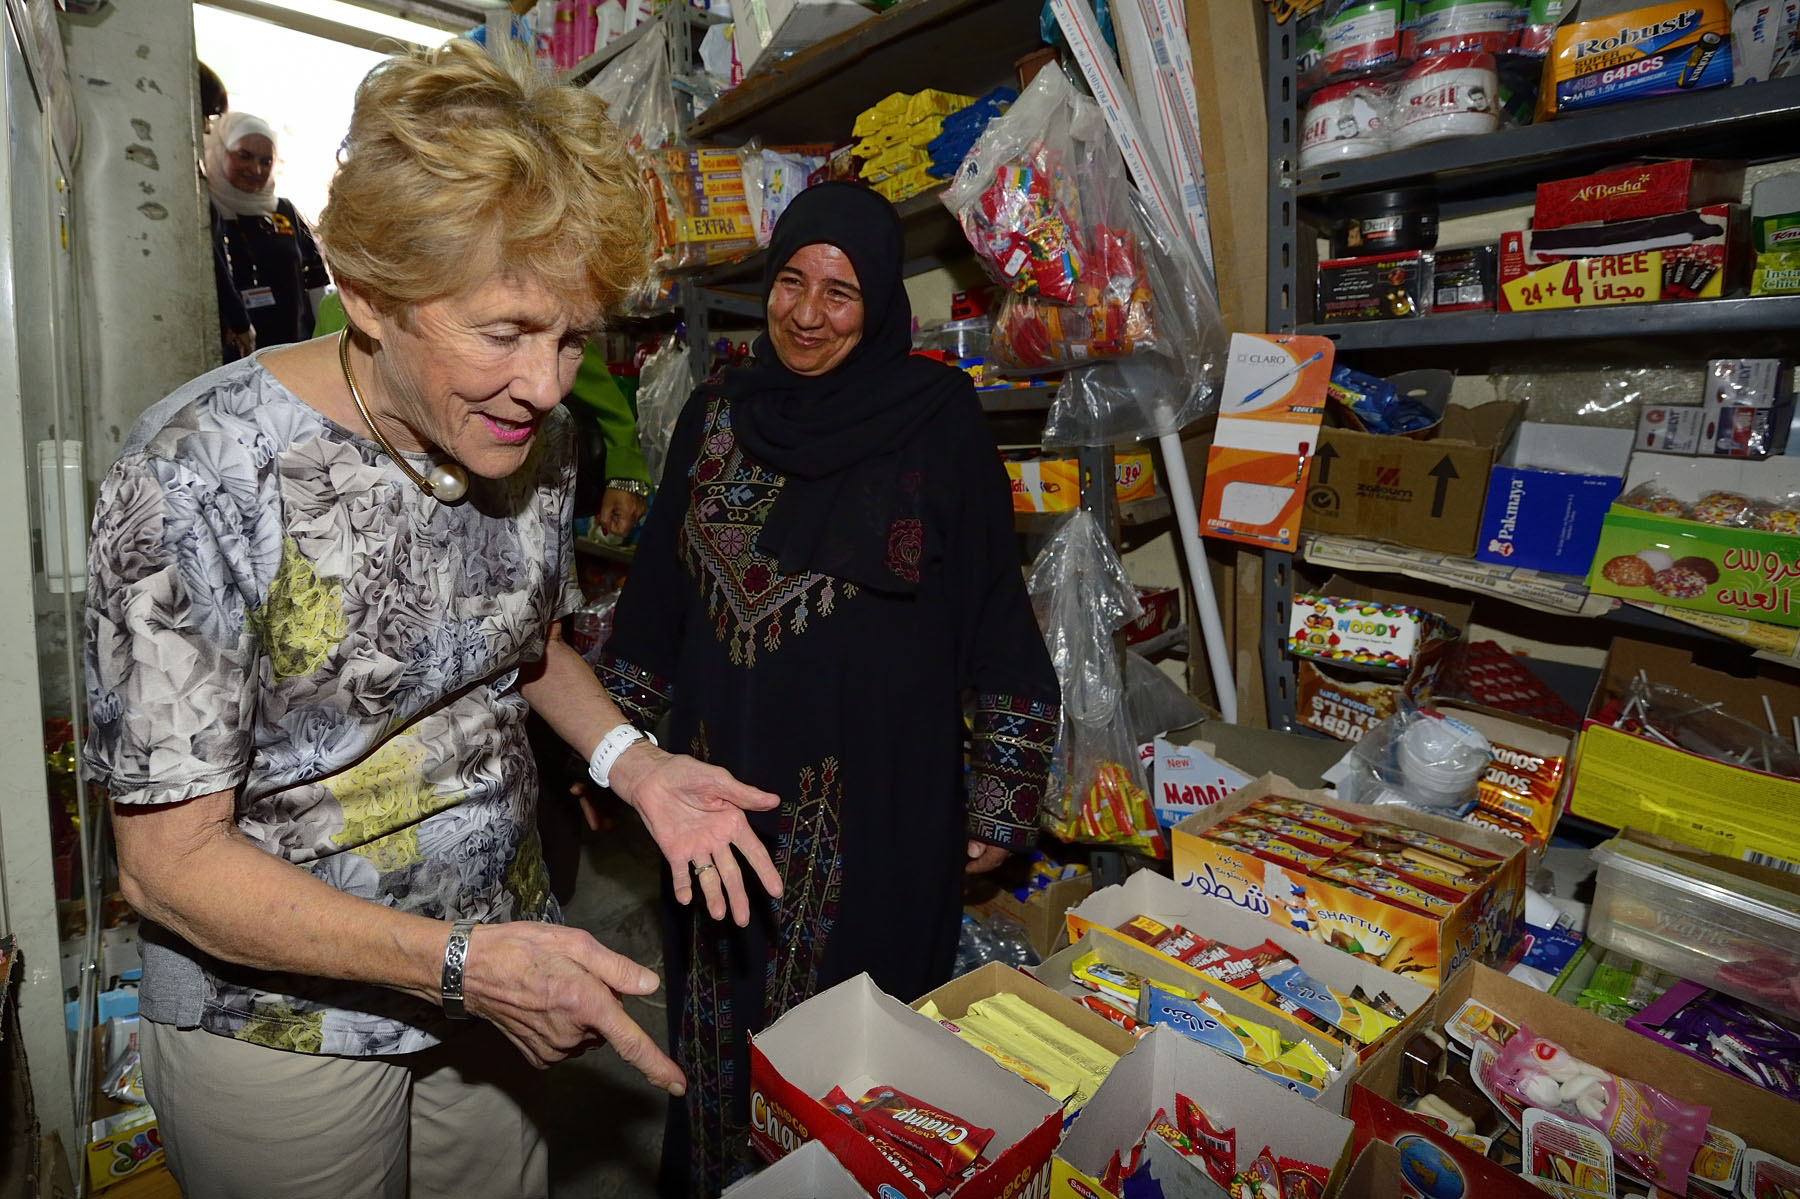 CARE is a global leader within a worldwide movement dedicated to ending poverty and committed to the dignity of people. With the help of CARE, Mariam was able to open a small shop similar to a convenience store.